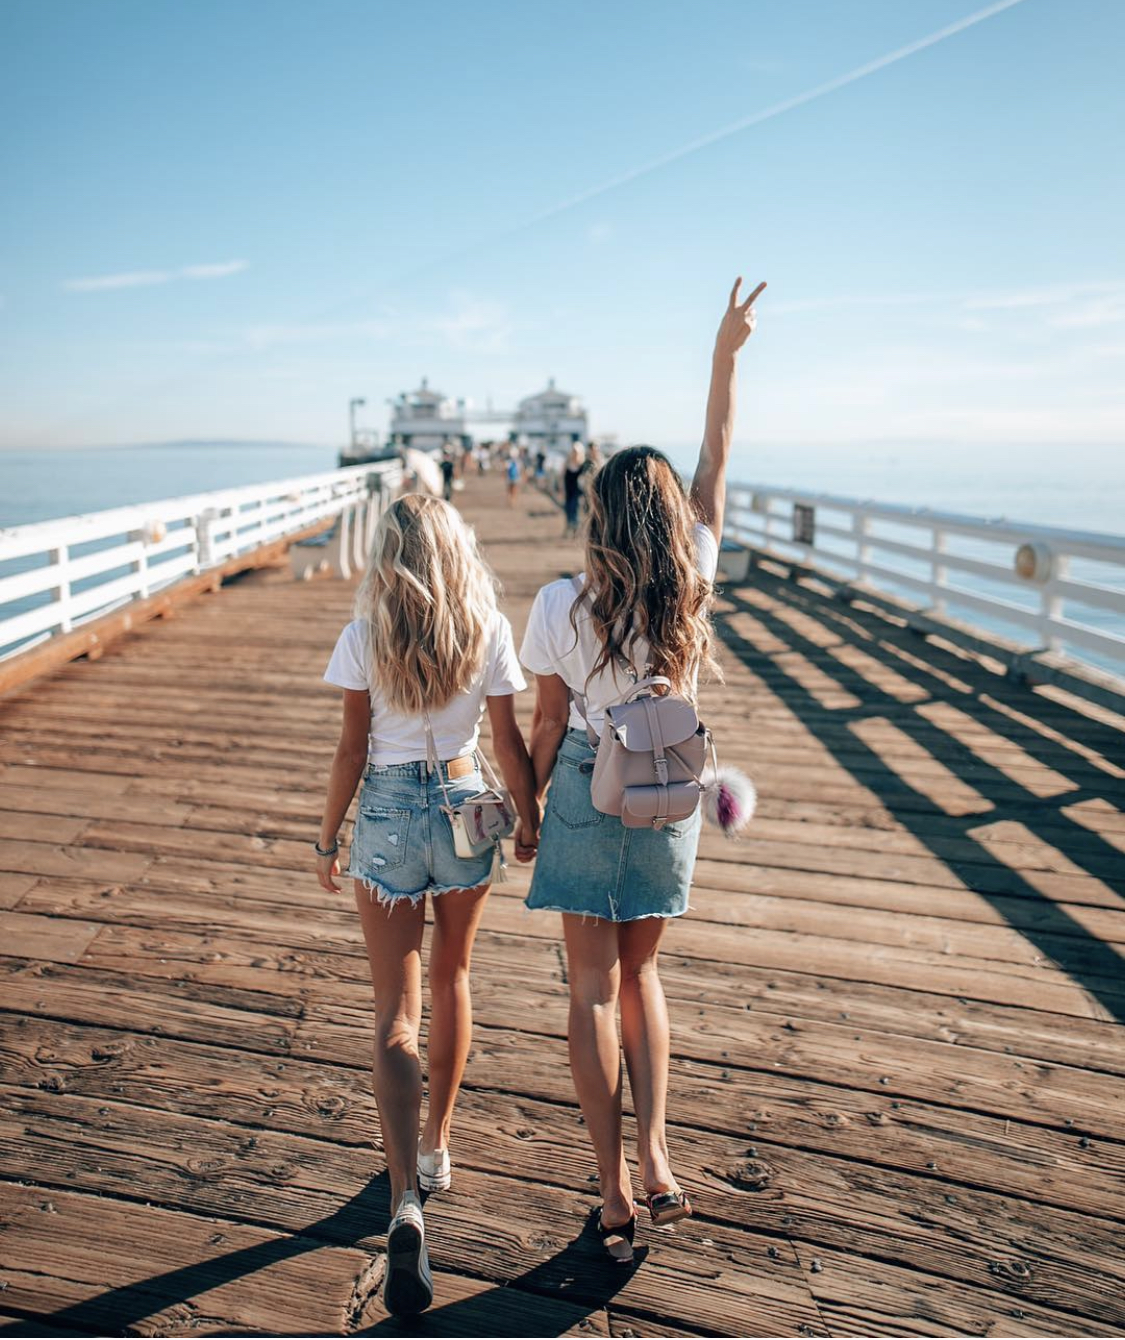 Lisa Homsy and Aggie Lal, top female travel influencers on Instagram, on Malibu Pier in Malibu, California